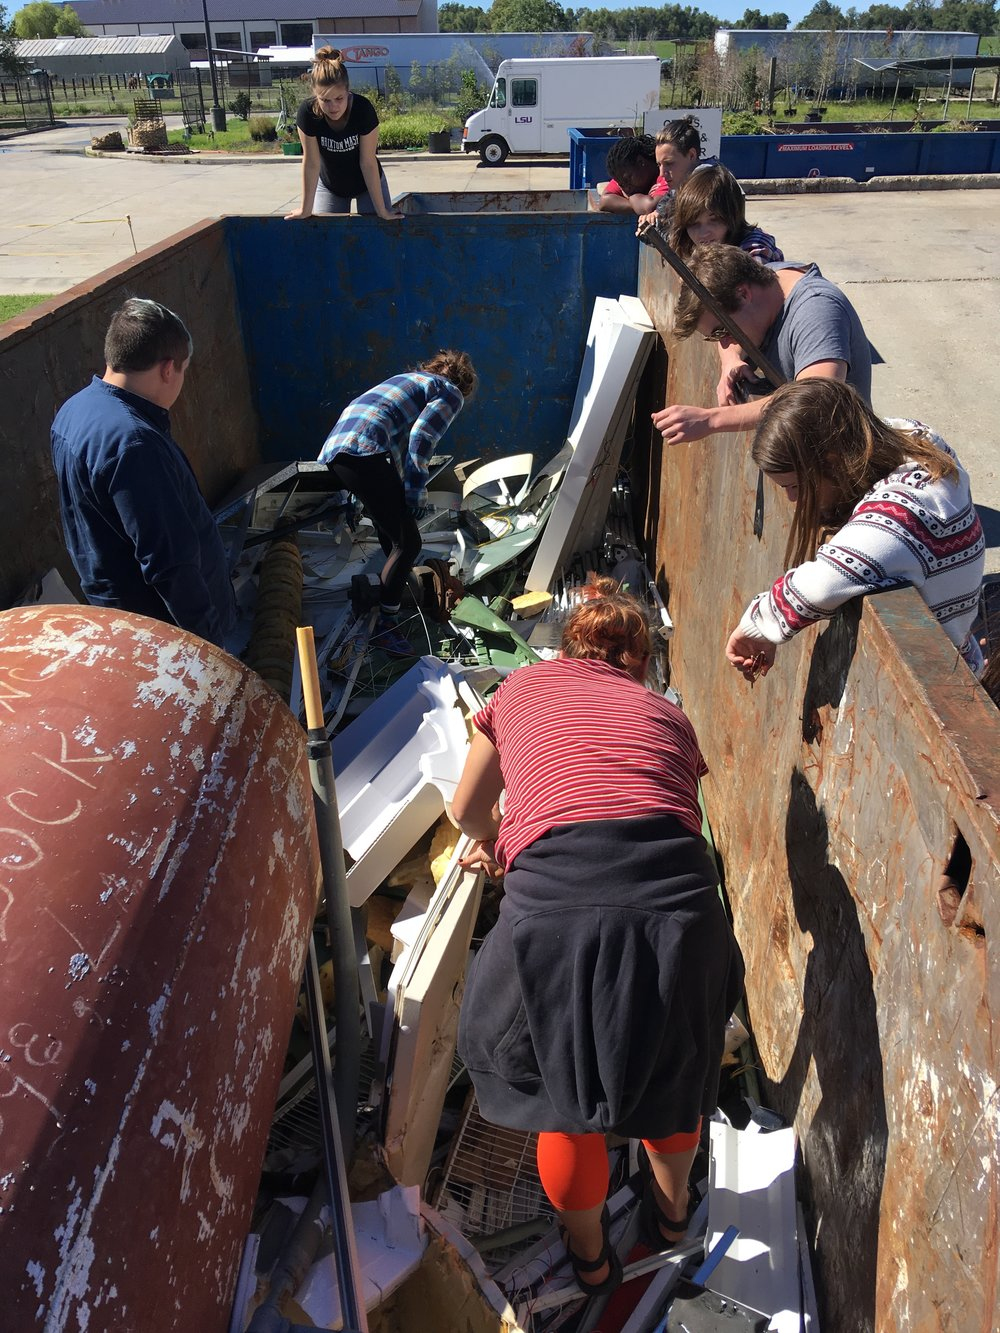 Students finding their materials in the LSU dumpsters.